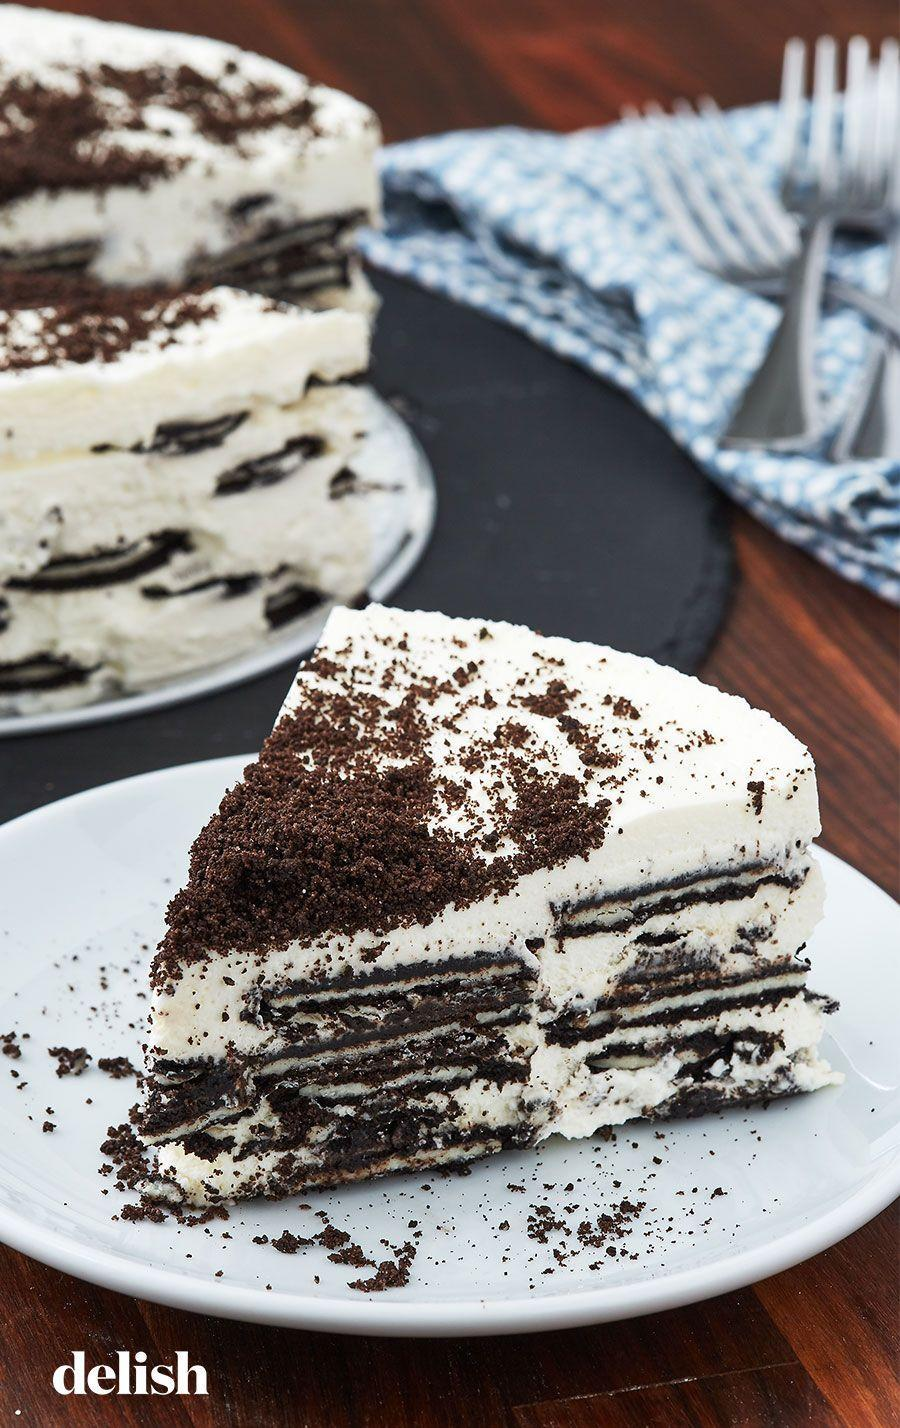 "<p>Few cakes are as easy to make as this one.</p><p>Get the recipe from <a href=""https://www.delish.com/cooking/recipe-ideas/a27469997/icebox-cake-recipe/"" rel=""nofollow noopener"" target=""_blank"" data-ylk=""slk:Delish"" class=""link rapid-noclick-resp"">Delish</a>.</p>"